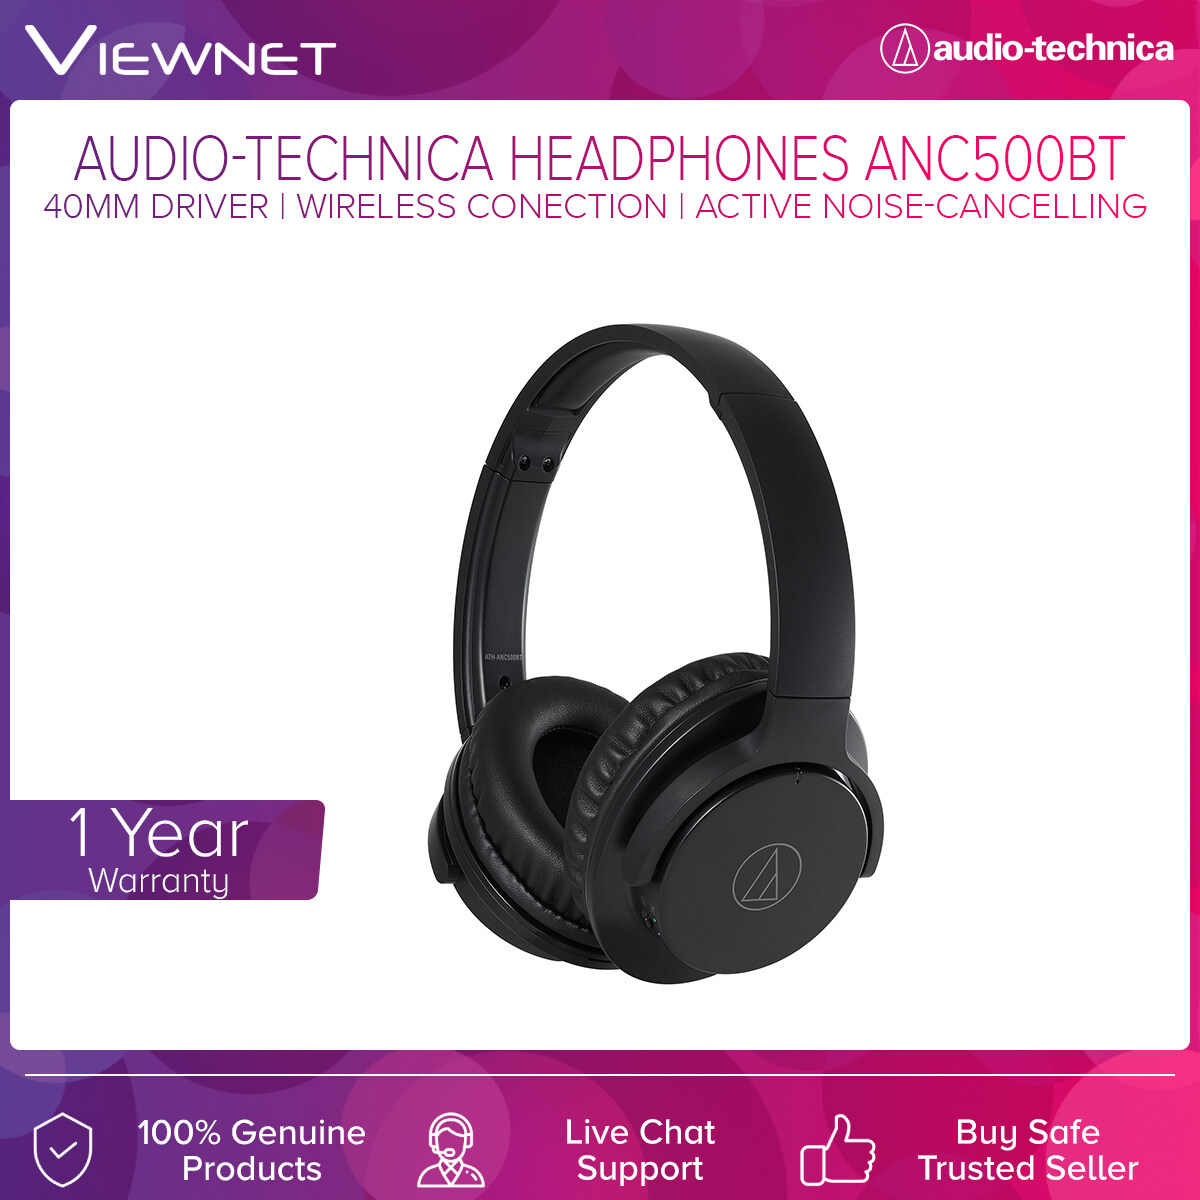 Audio-Technica Wireless Headphones ATH-ANC500BT with Active Noise-Cancelling, 40mm Driver, Bluetooth 4.1, 20 - 20,000 Hz Frequency, 1.2m Length Cable, Gold-Plated 3.5mm Audio Jack, 42 Hours Battery Life